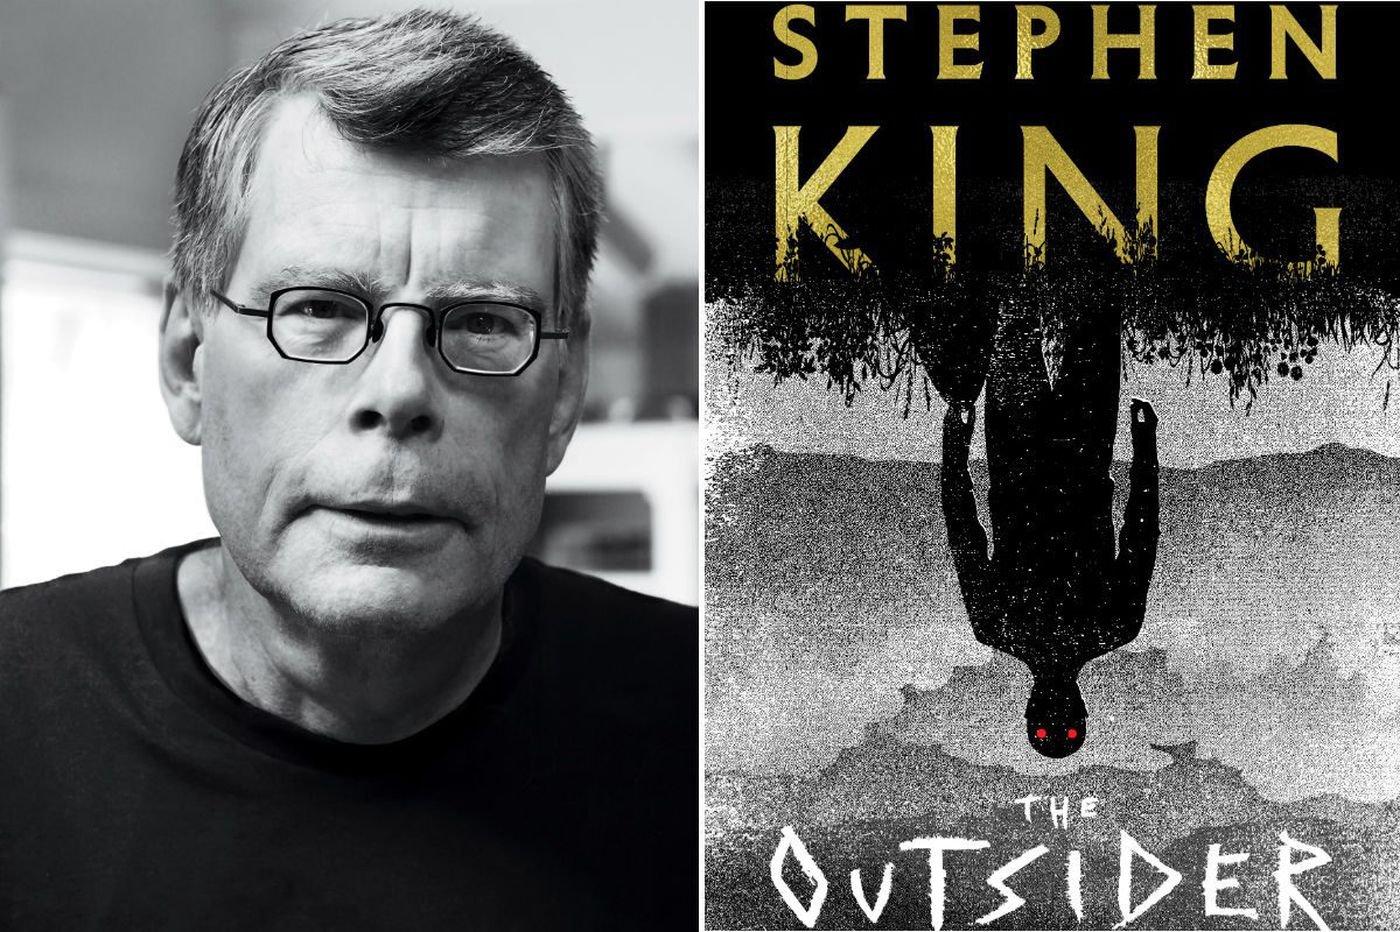 Stephen King's 'The Outsider': A thrill ride from an American classic writer